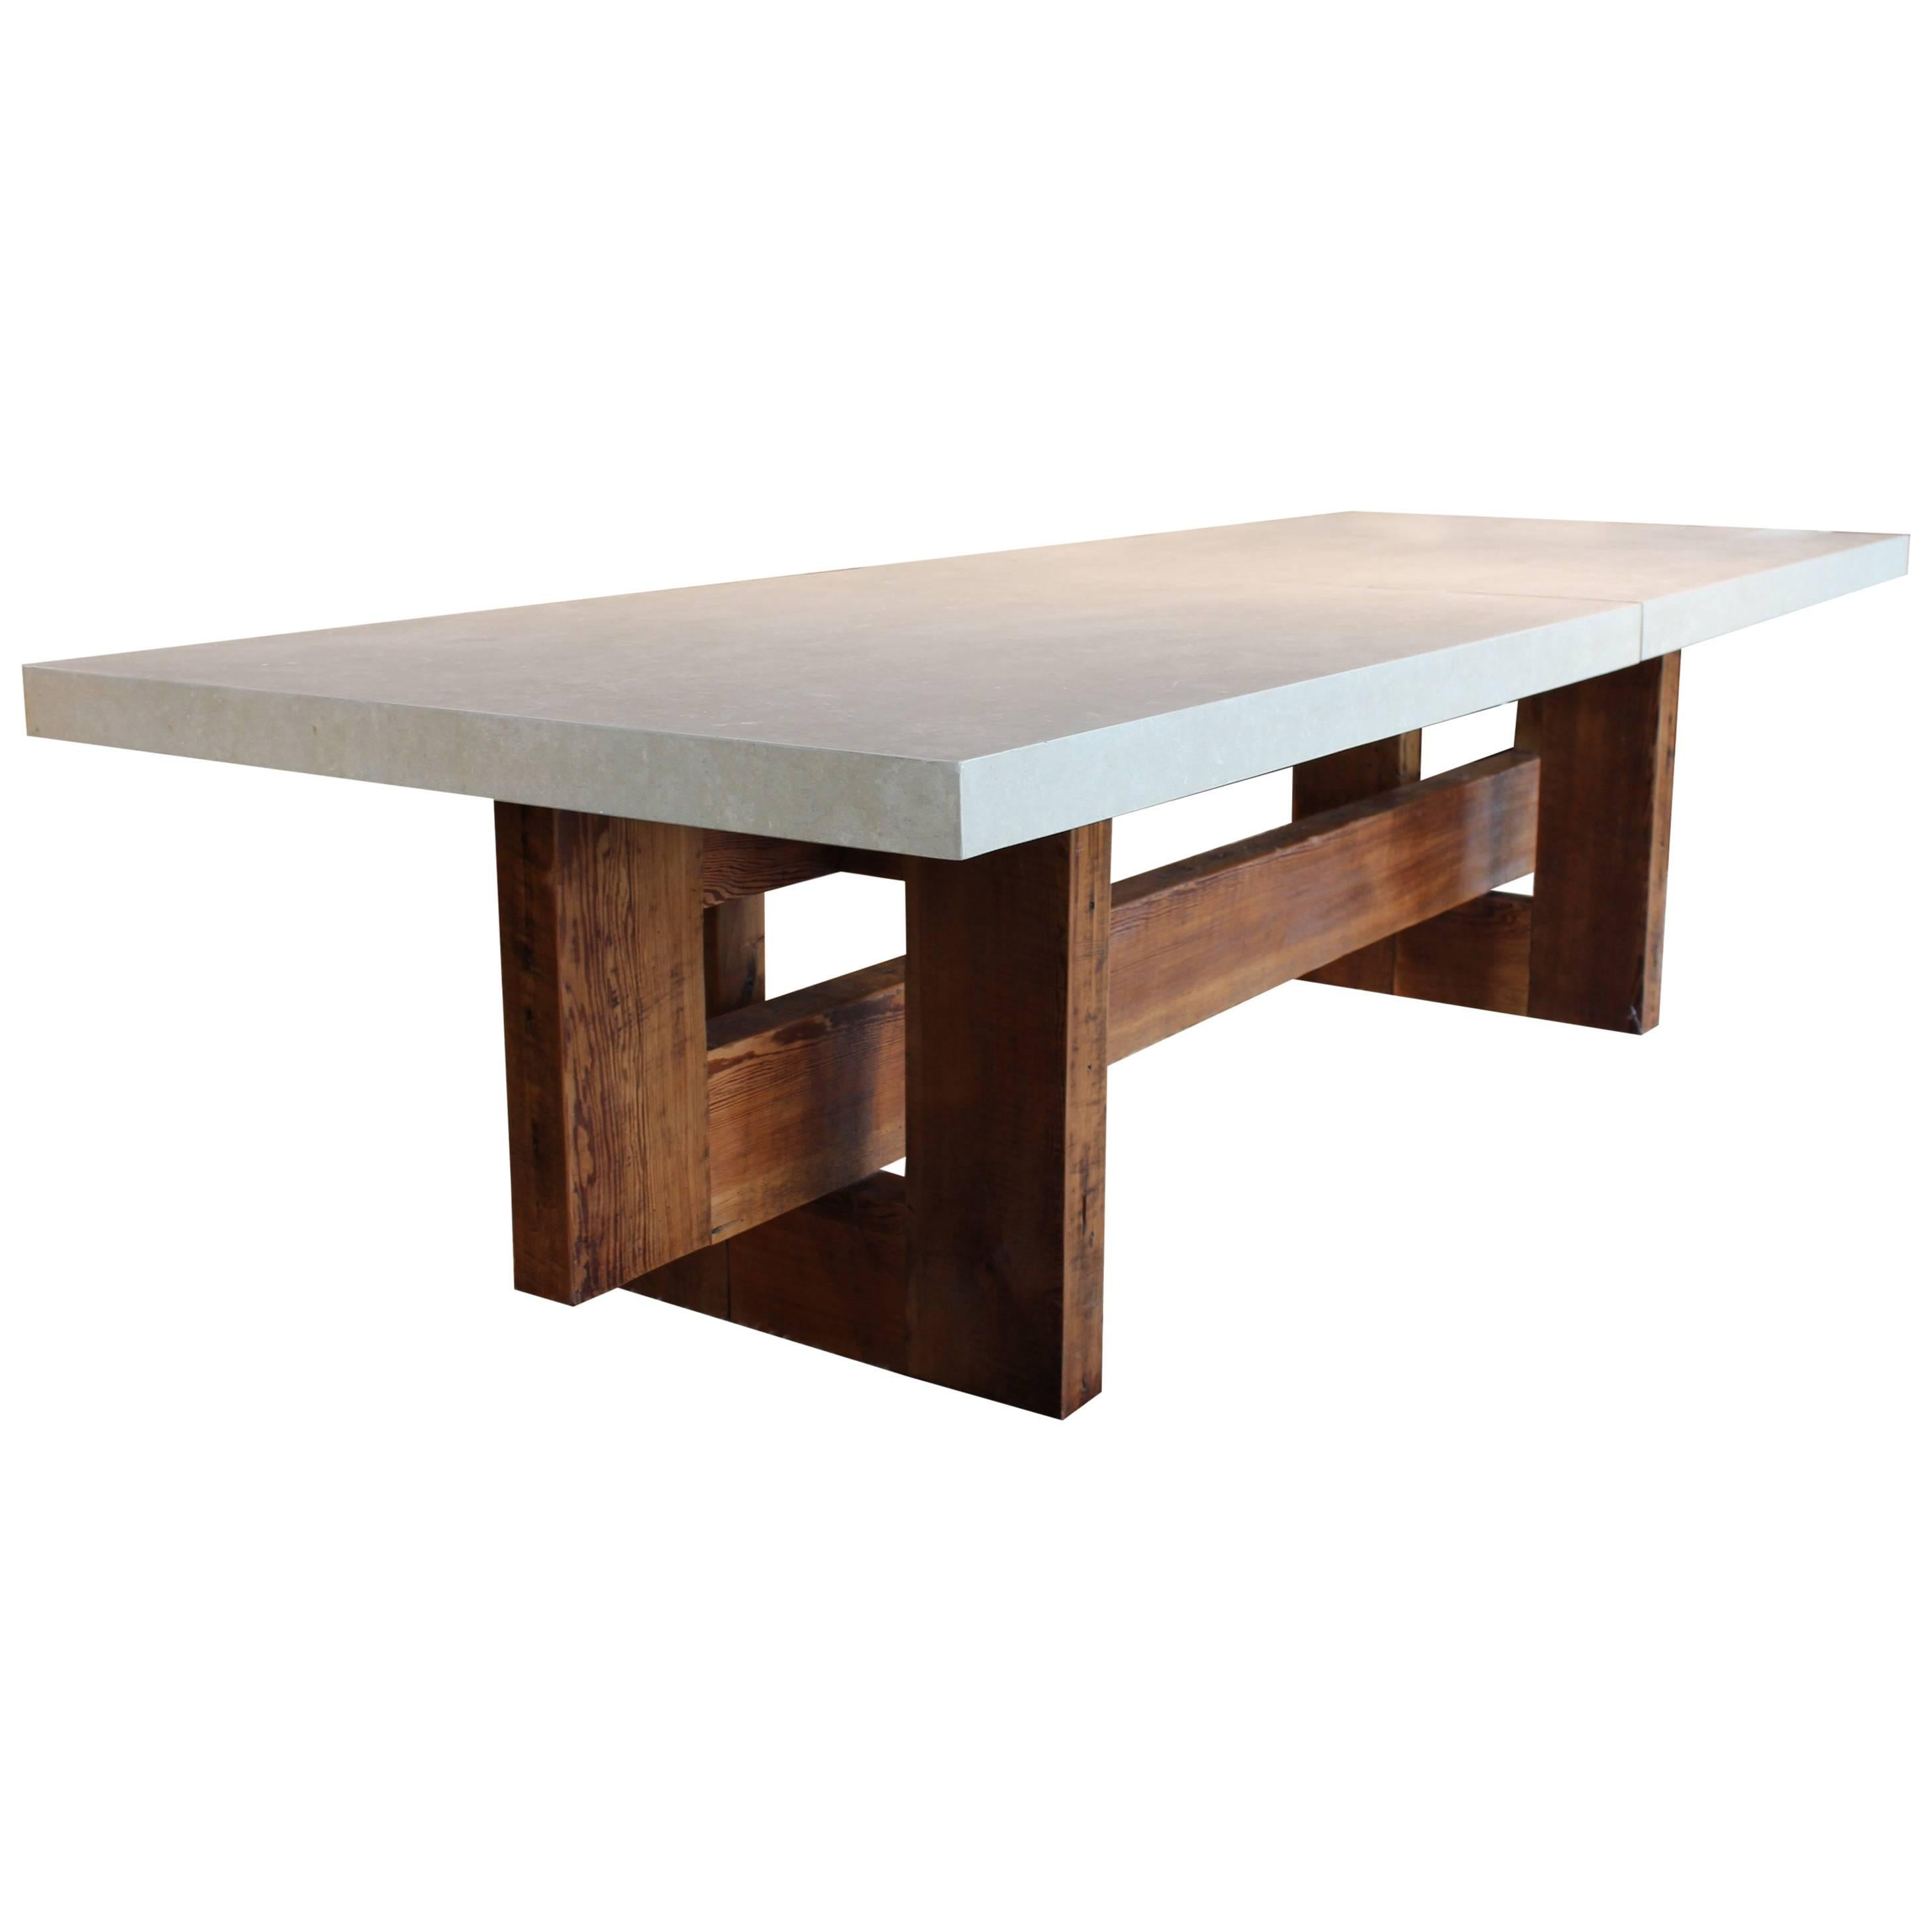 Architectural Dining Table With Reclaimed Pine Beams U0026 Two Section Limestone  Top